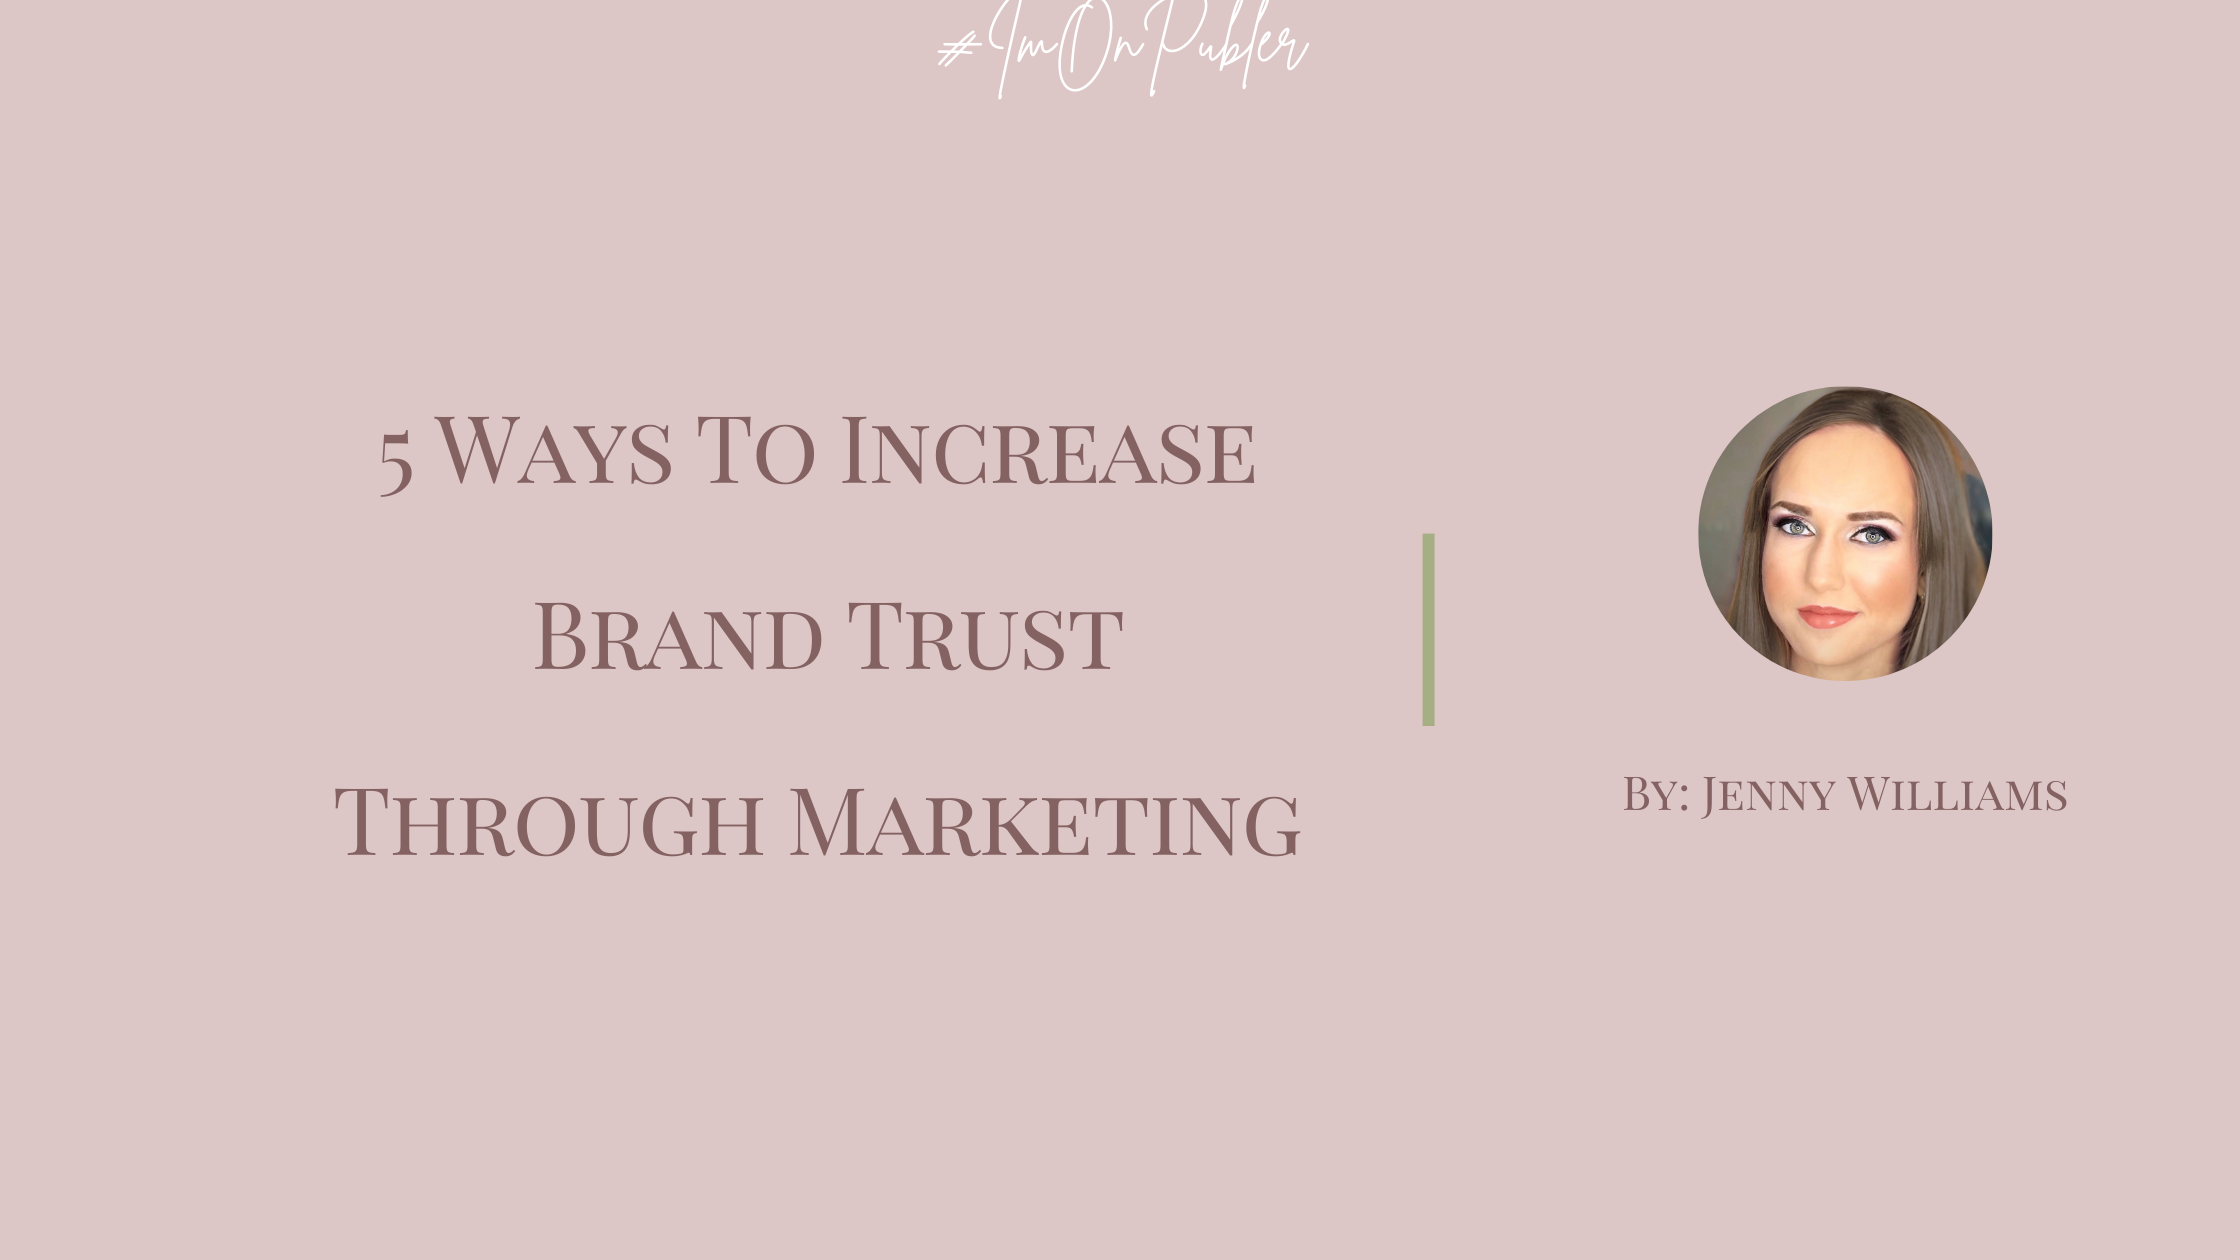 5 Ways To Increase Brand Trust Through Marketing by Jenny Williams